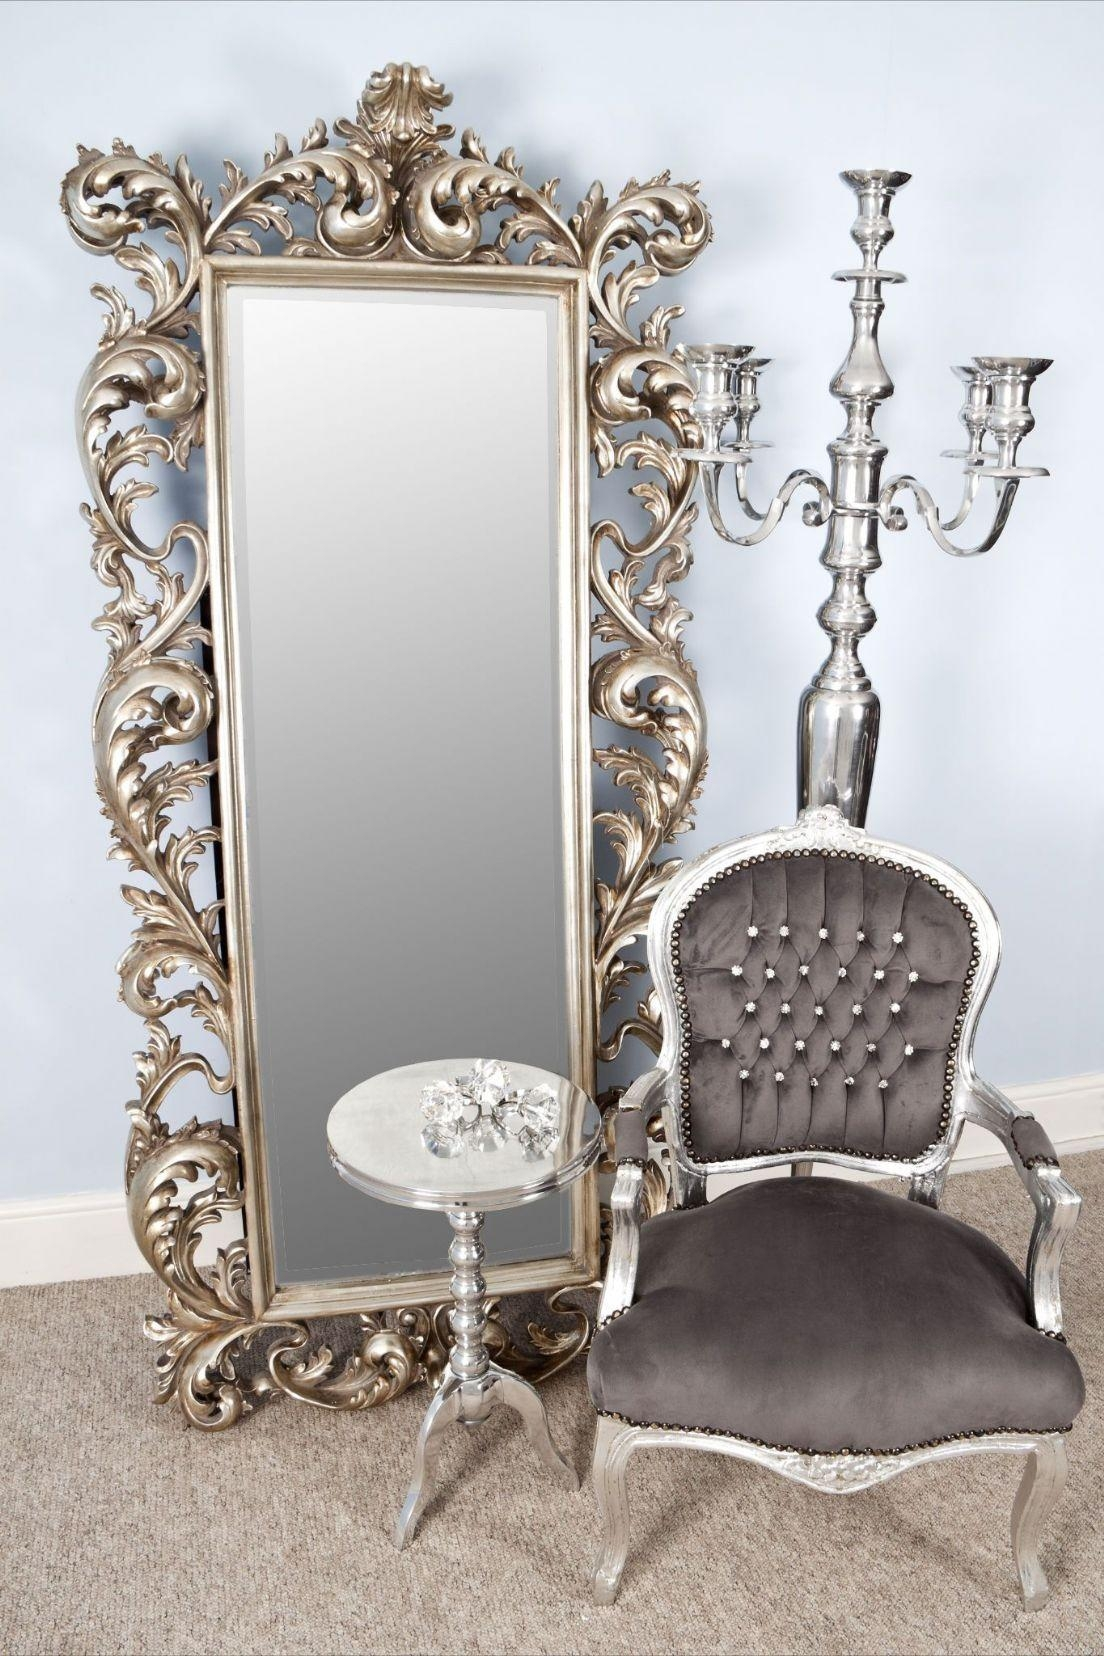 Bedroom Furniture Sets : Framed Mirrors Gold Mirror Mirror Framed Throughout Full Length Vintage Mirror (Image 4 of 20)